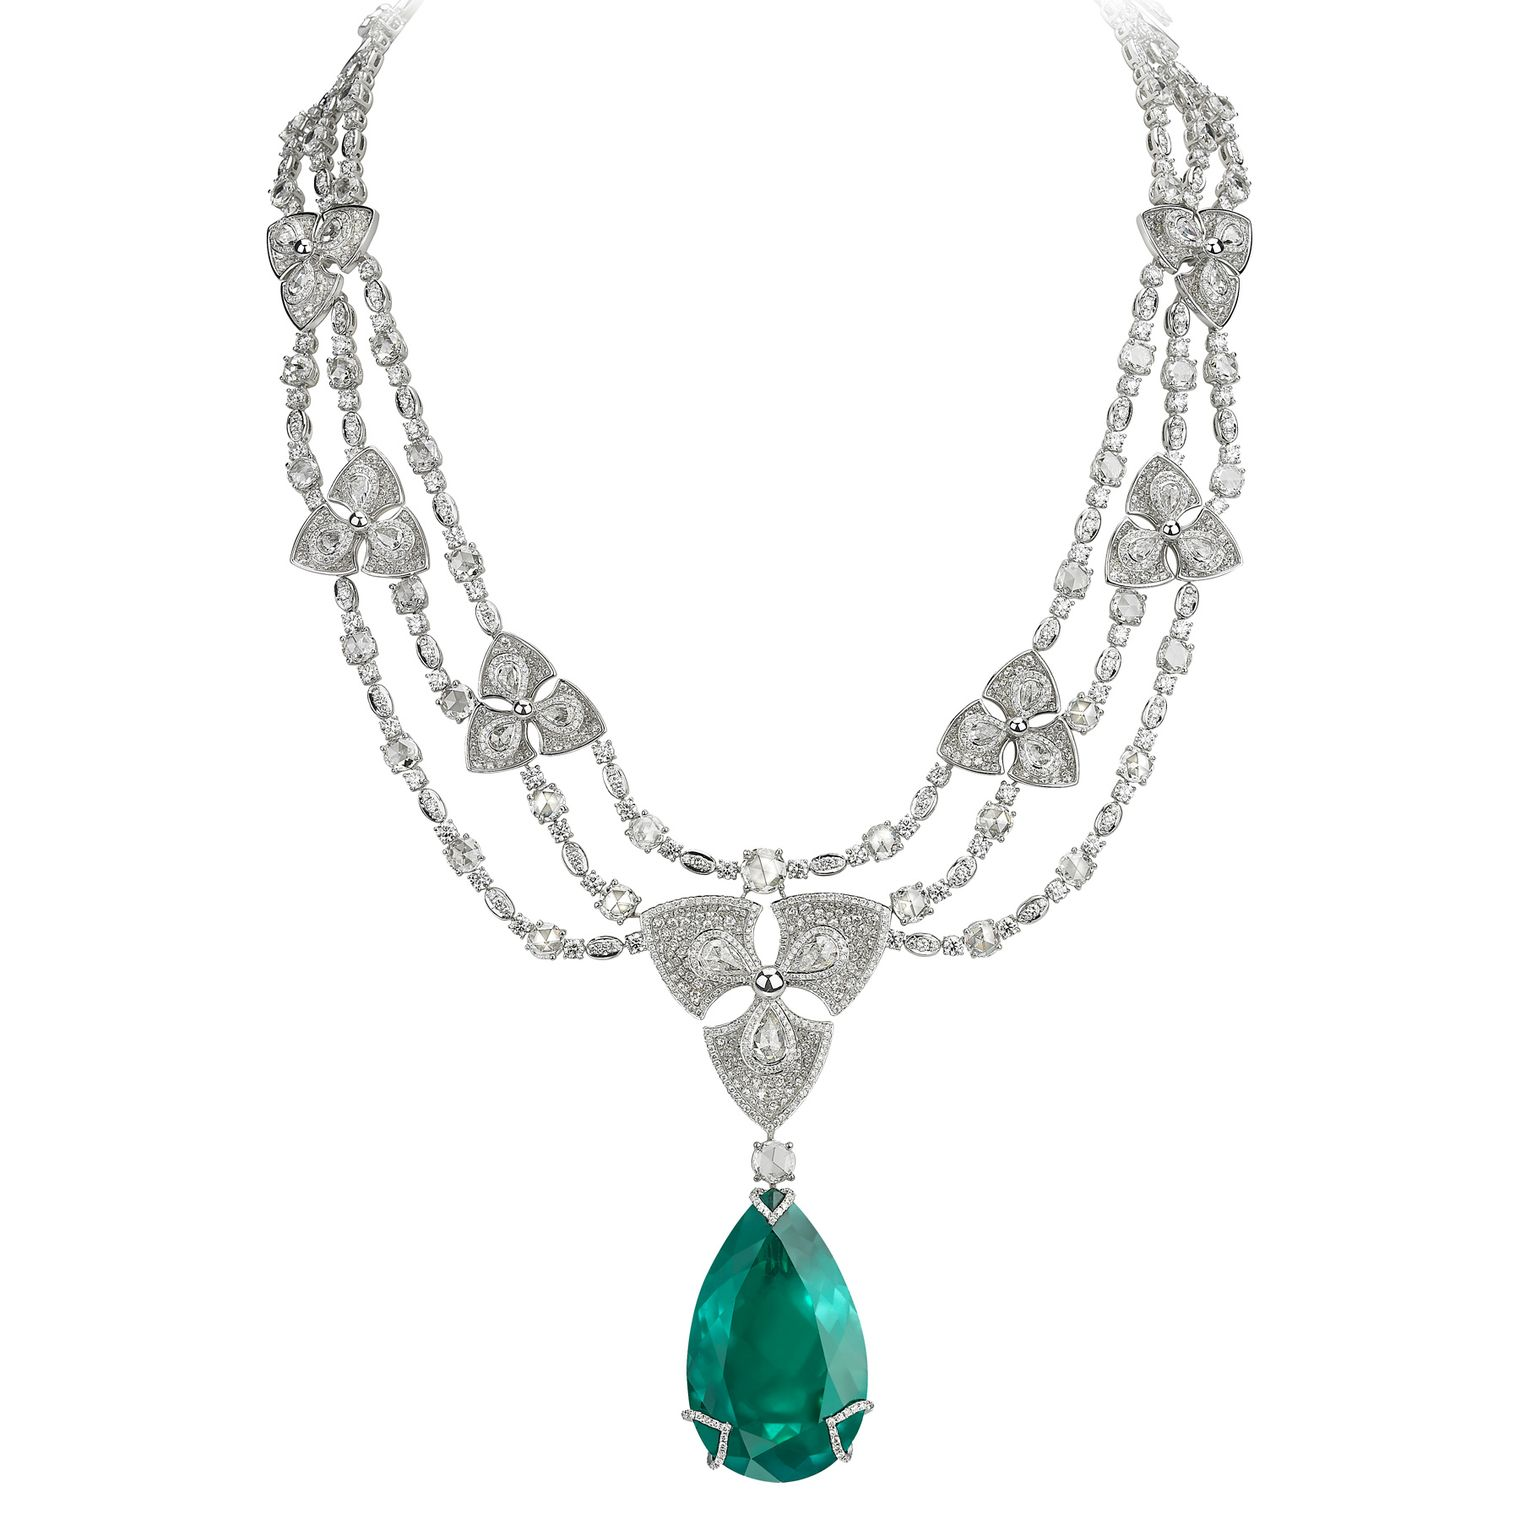 Pear-shaped Colombian emerald necklace with diamonds